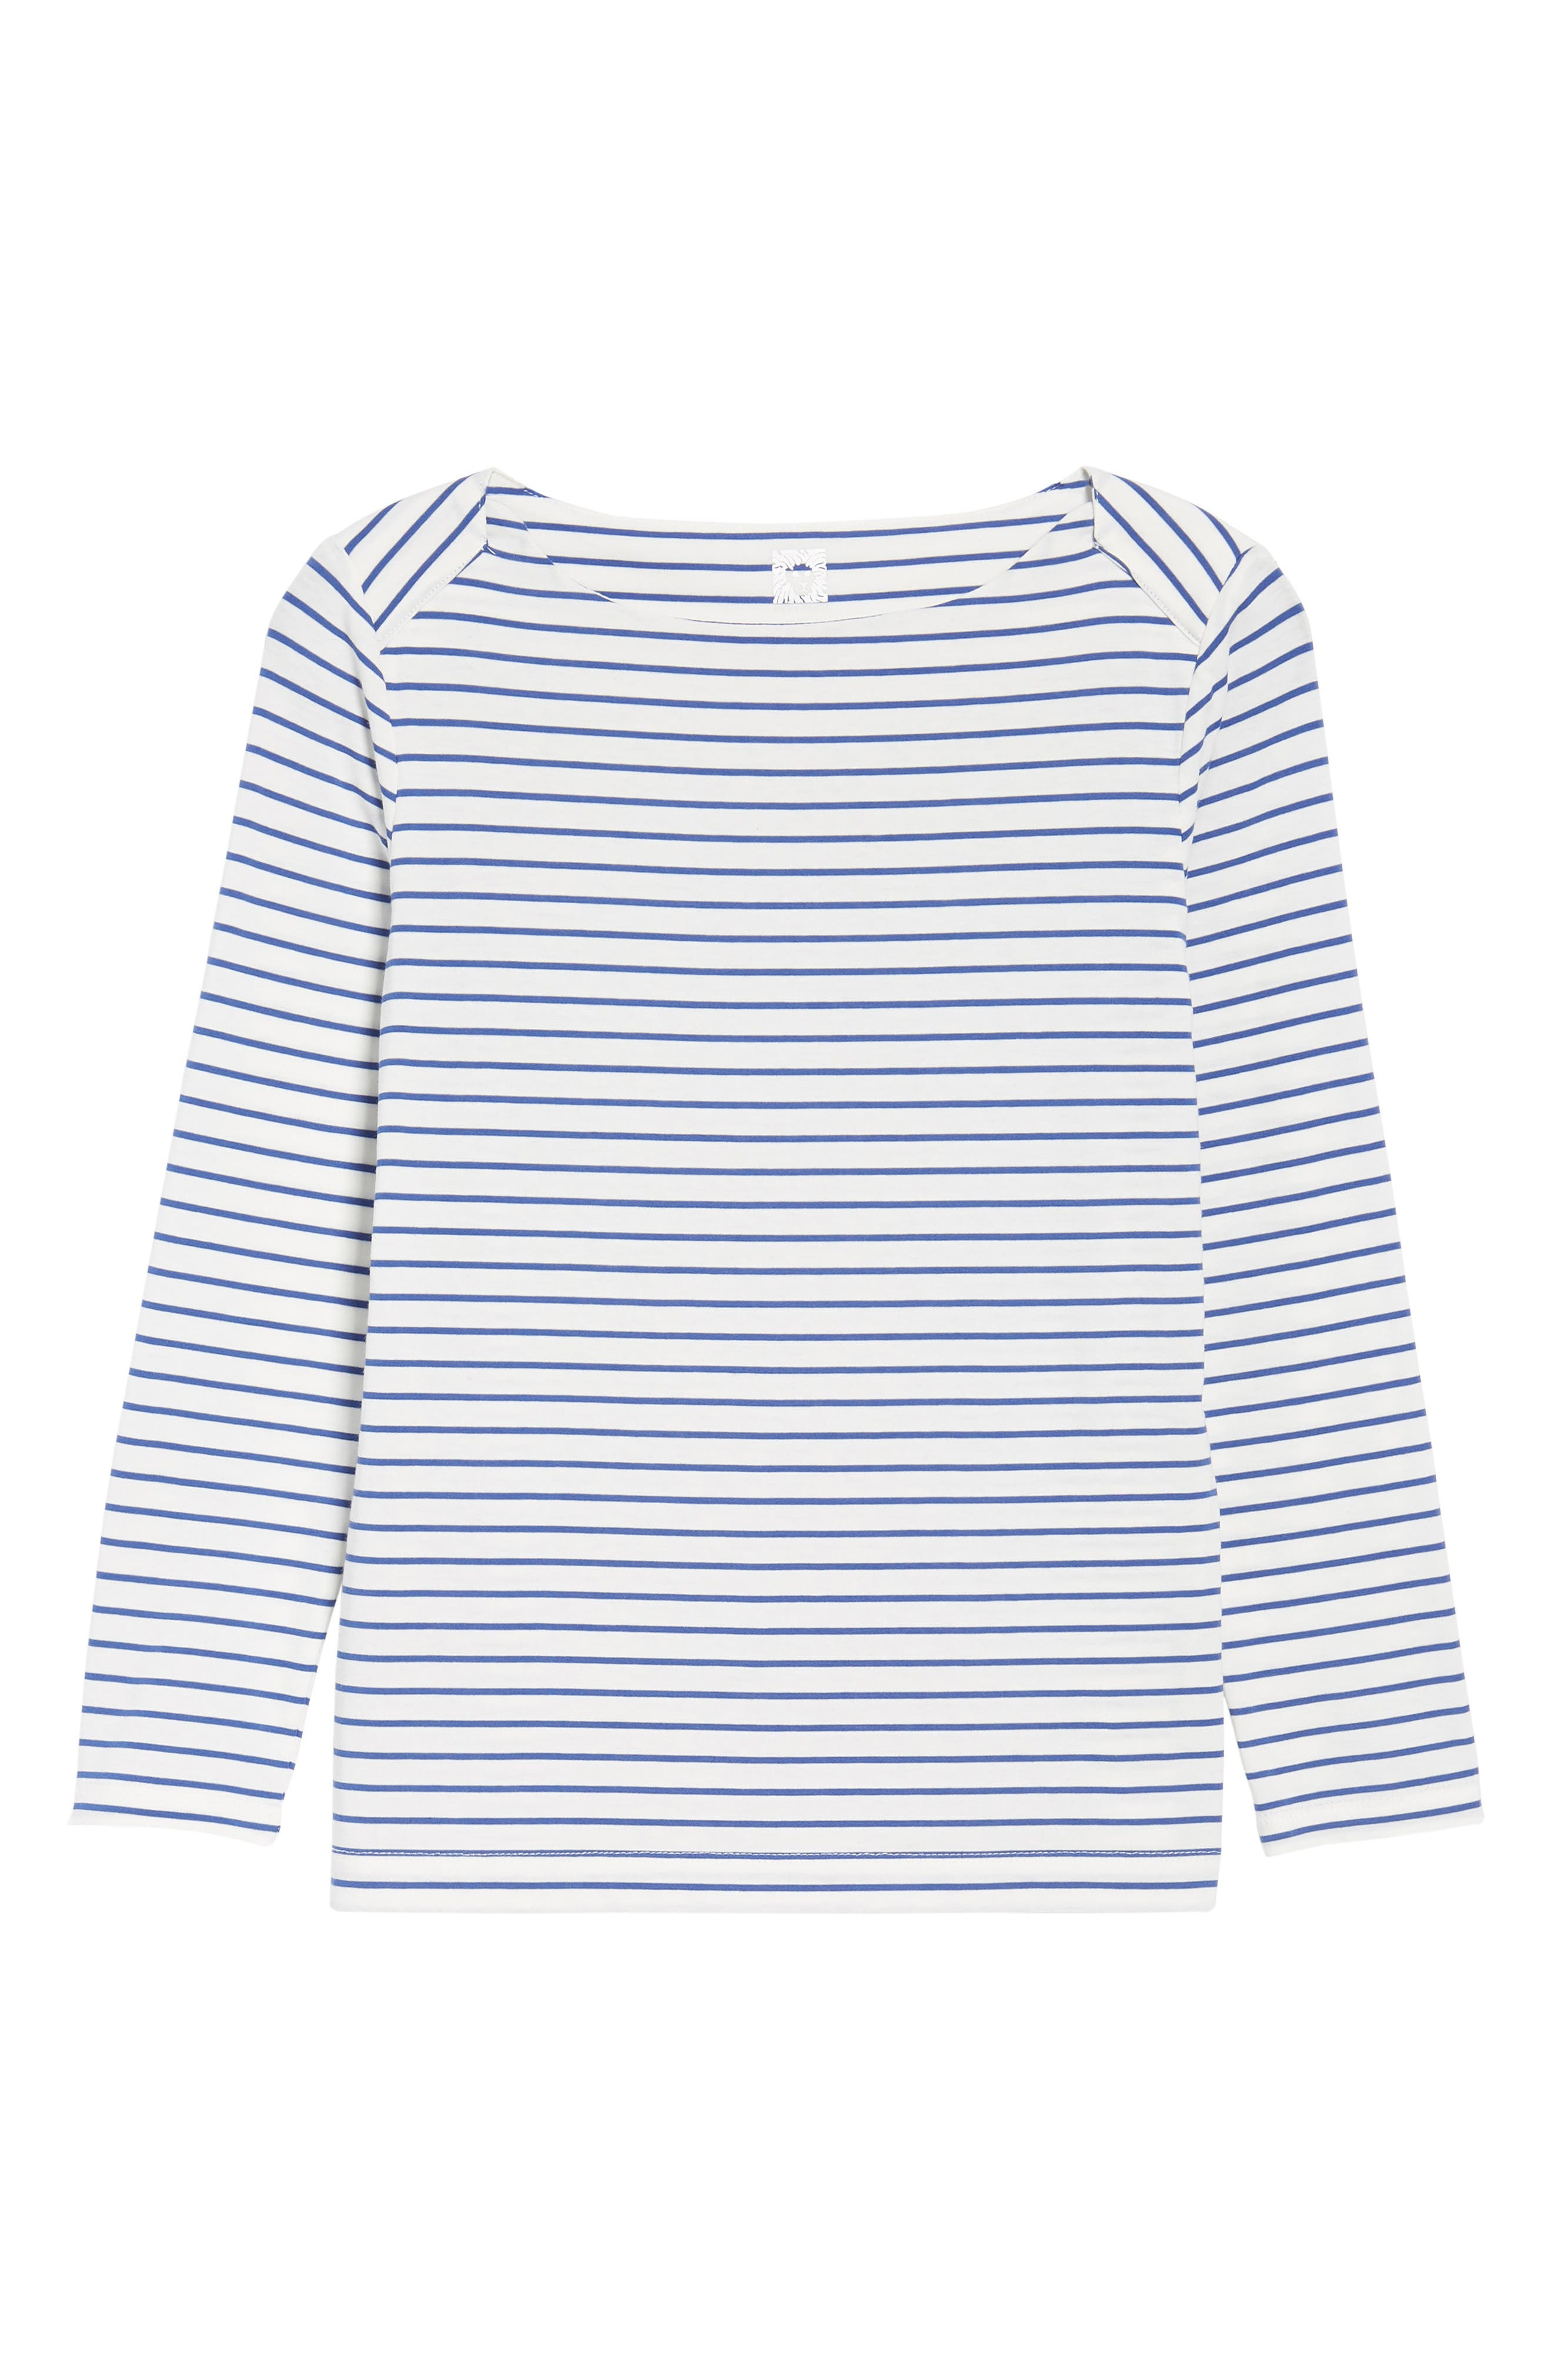 Stripe Knit Boatneck Top,                             Alternate thumbnail 6, color,                             100